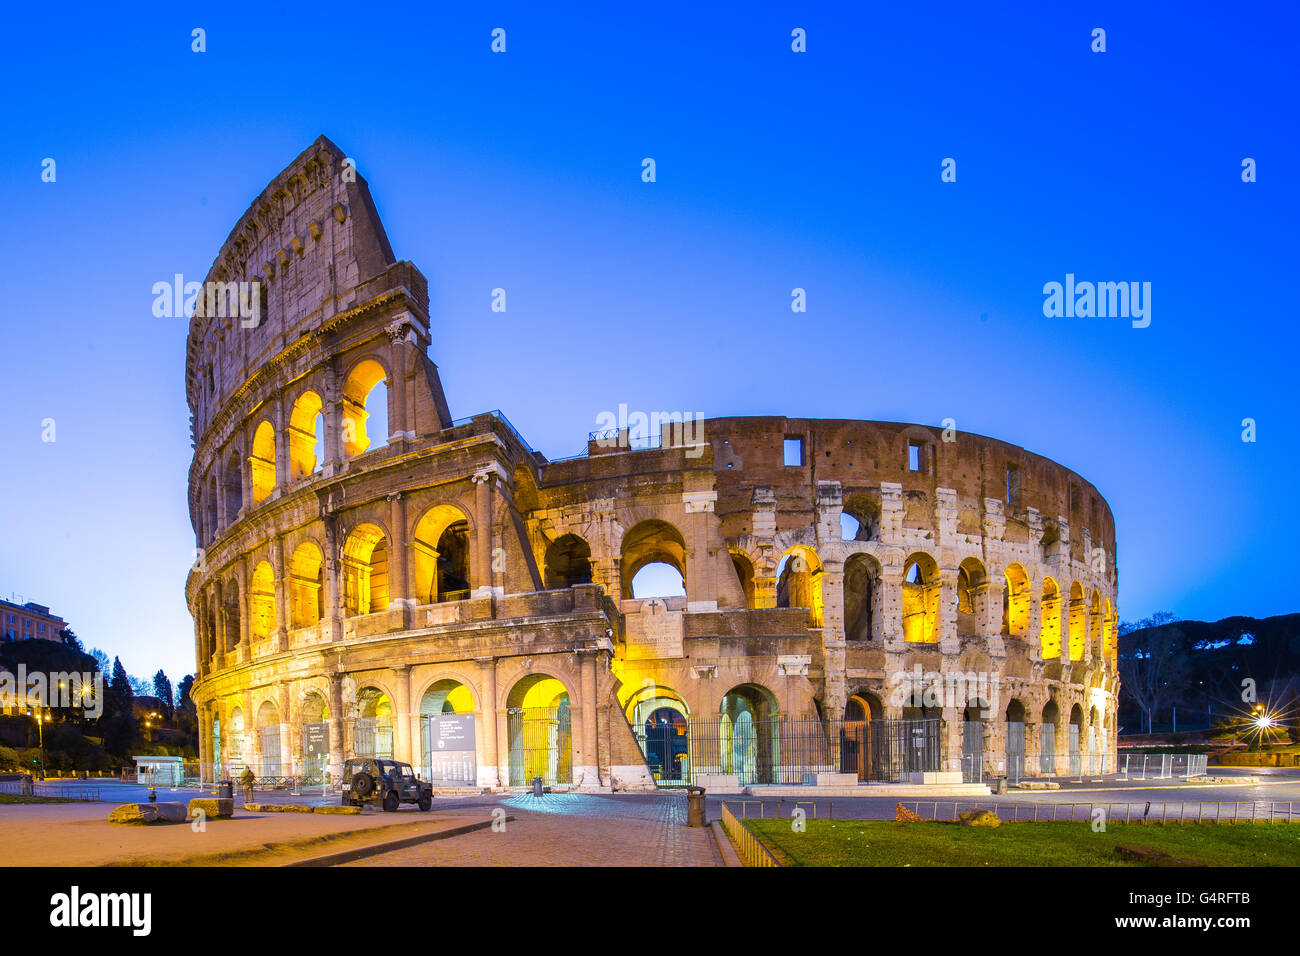 Colosseum at night in Rome, Italy. - Stock Image